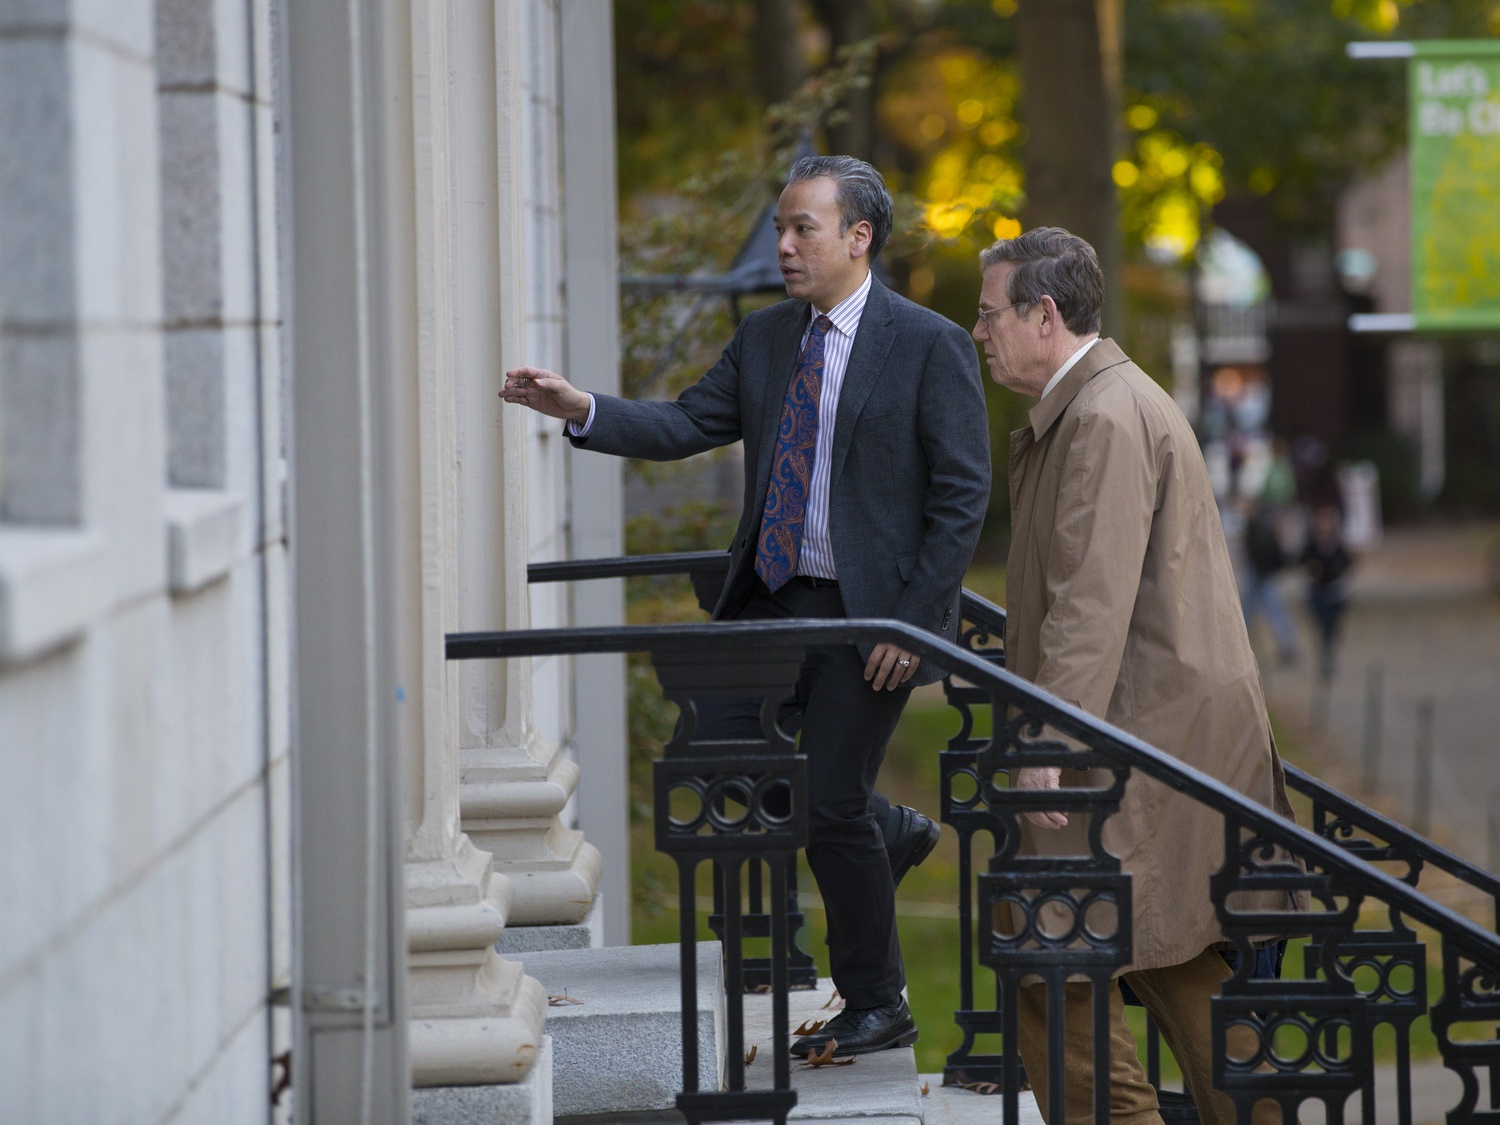 Robert A. Lue, left, and Vice Provost for Advances in Learning Peter K. Bol enter University Hall before a faculty meeting in November 2015.